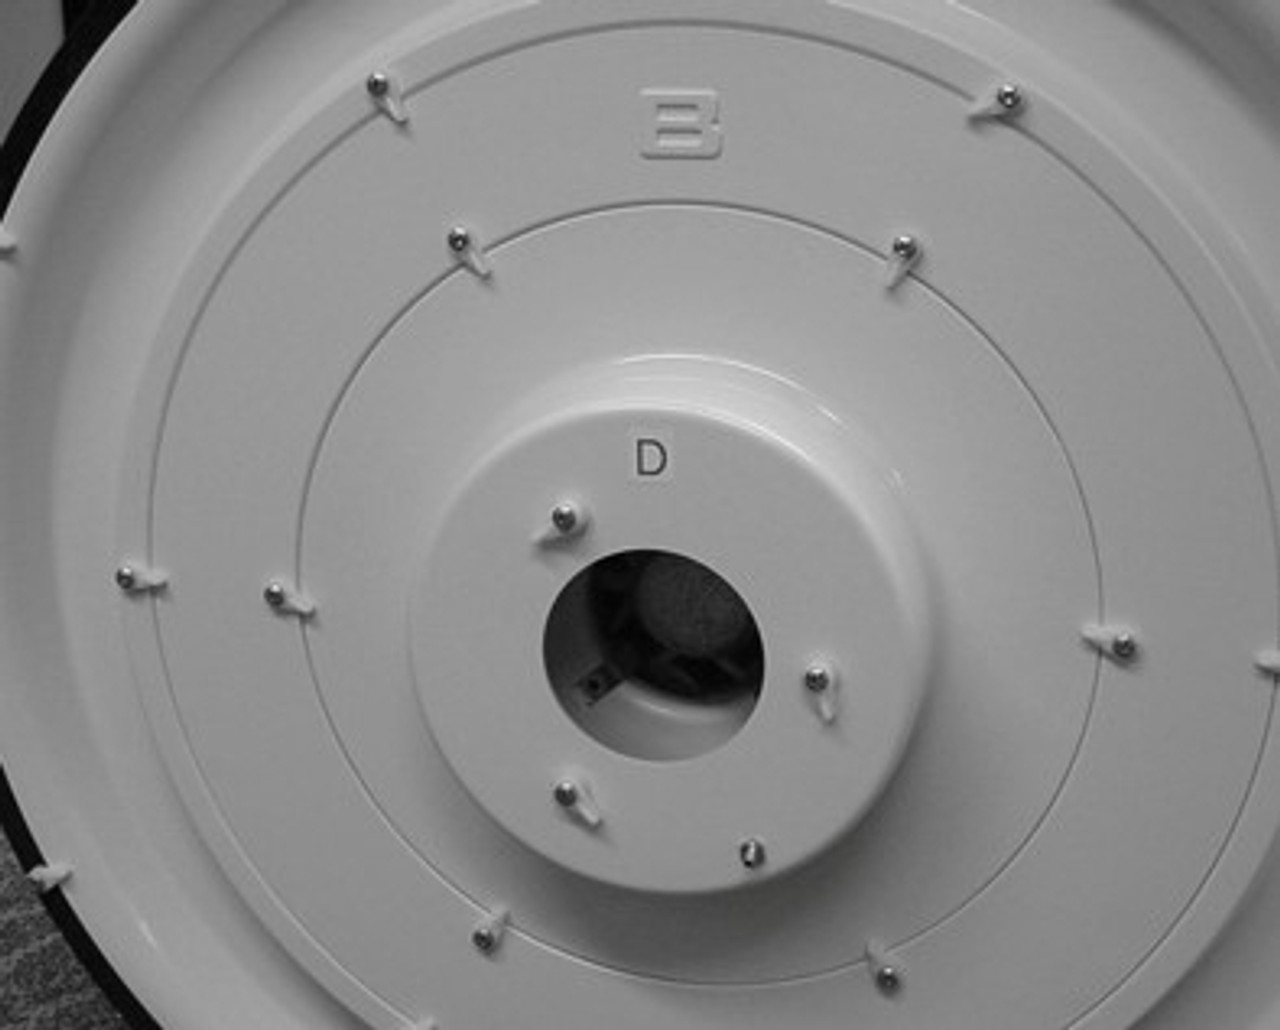 The Energy Conservatory Ring D for Blower Door Fan Model 3